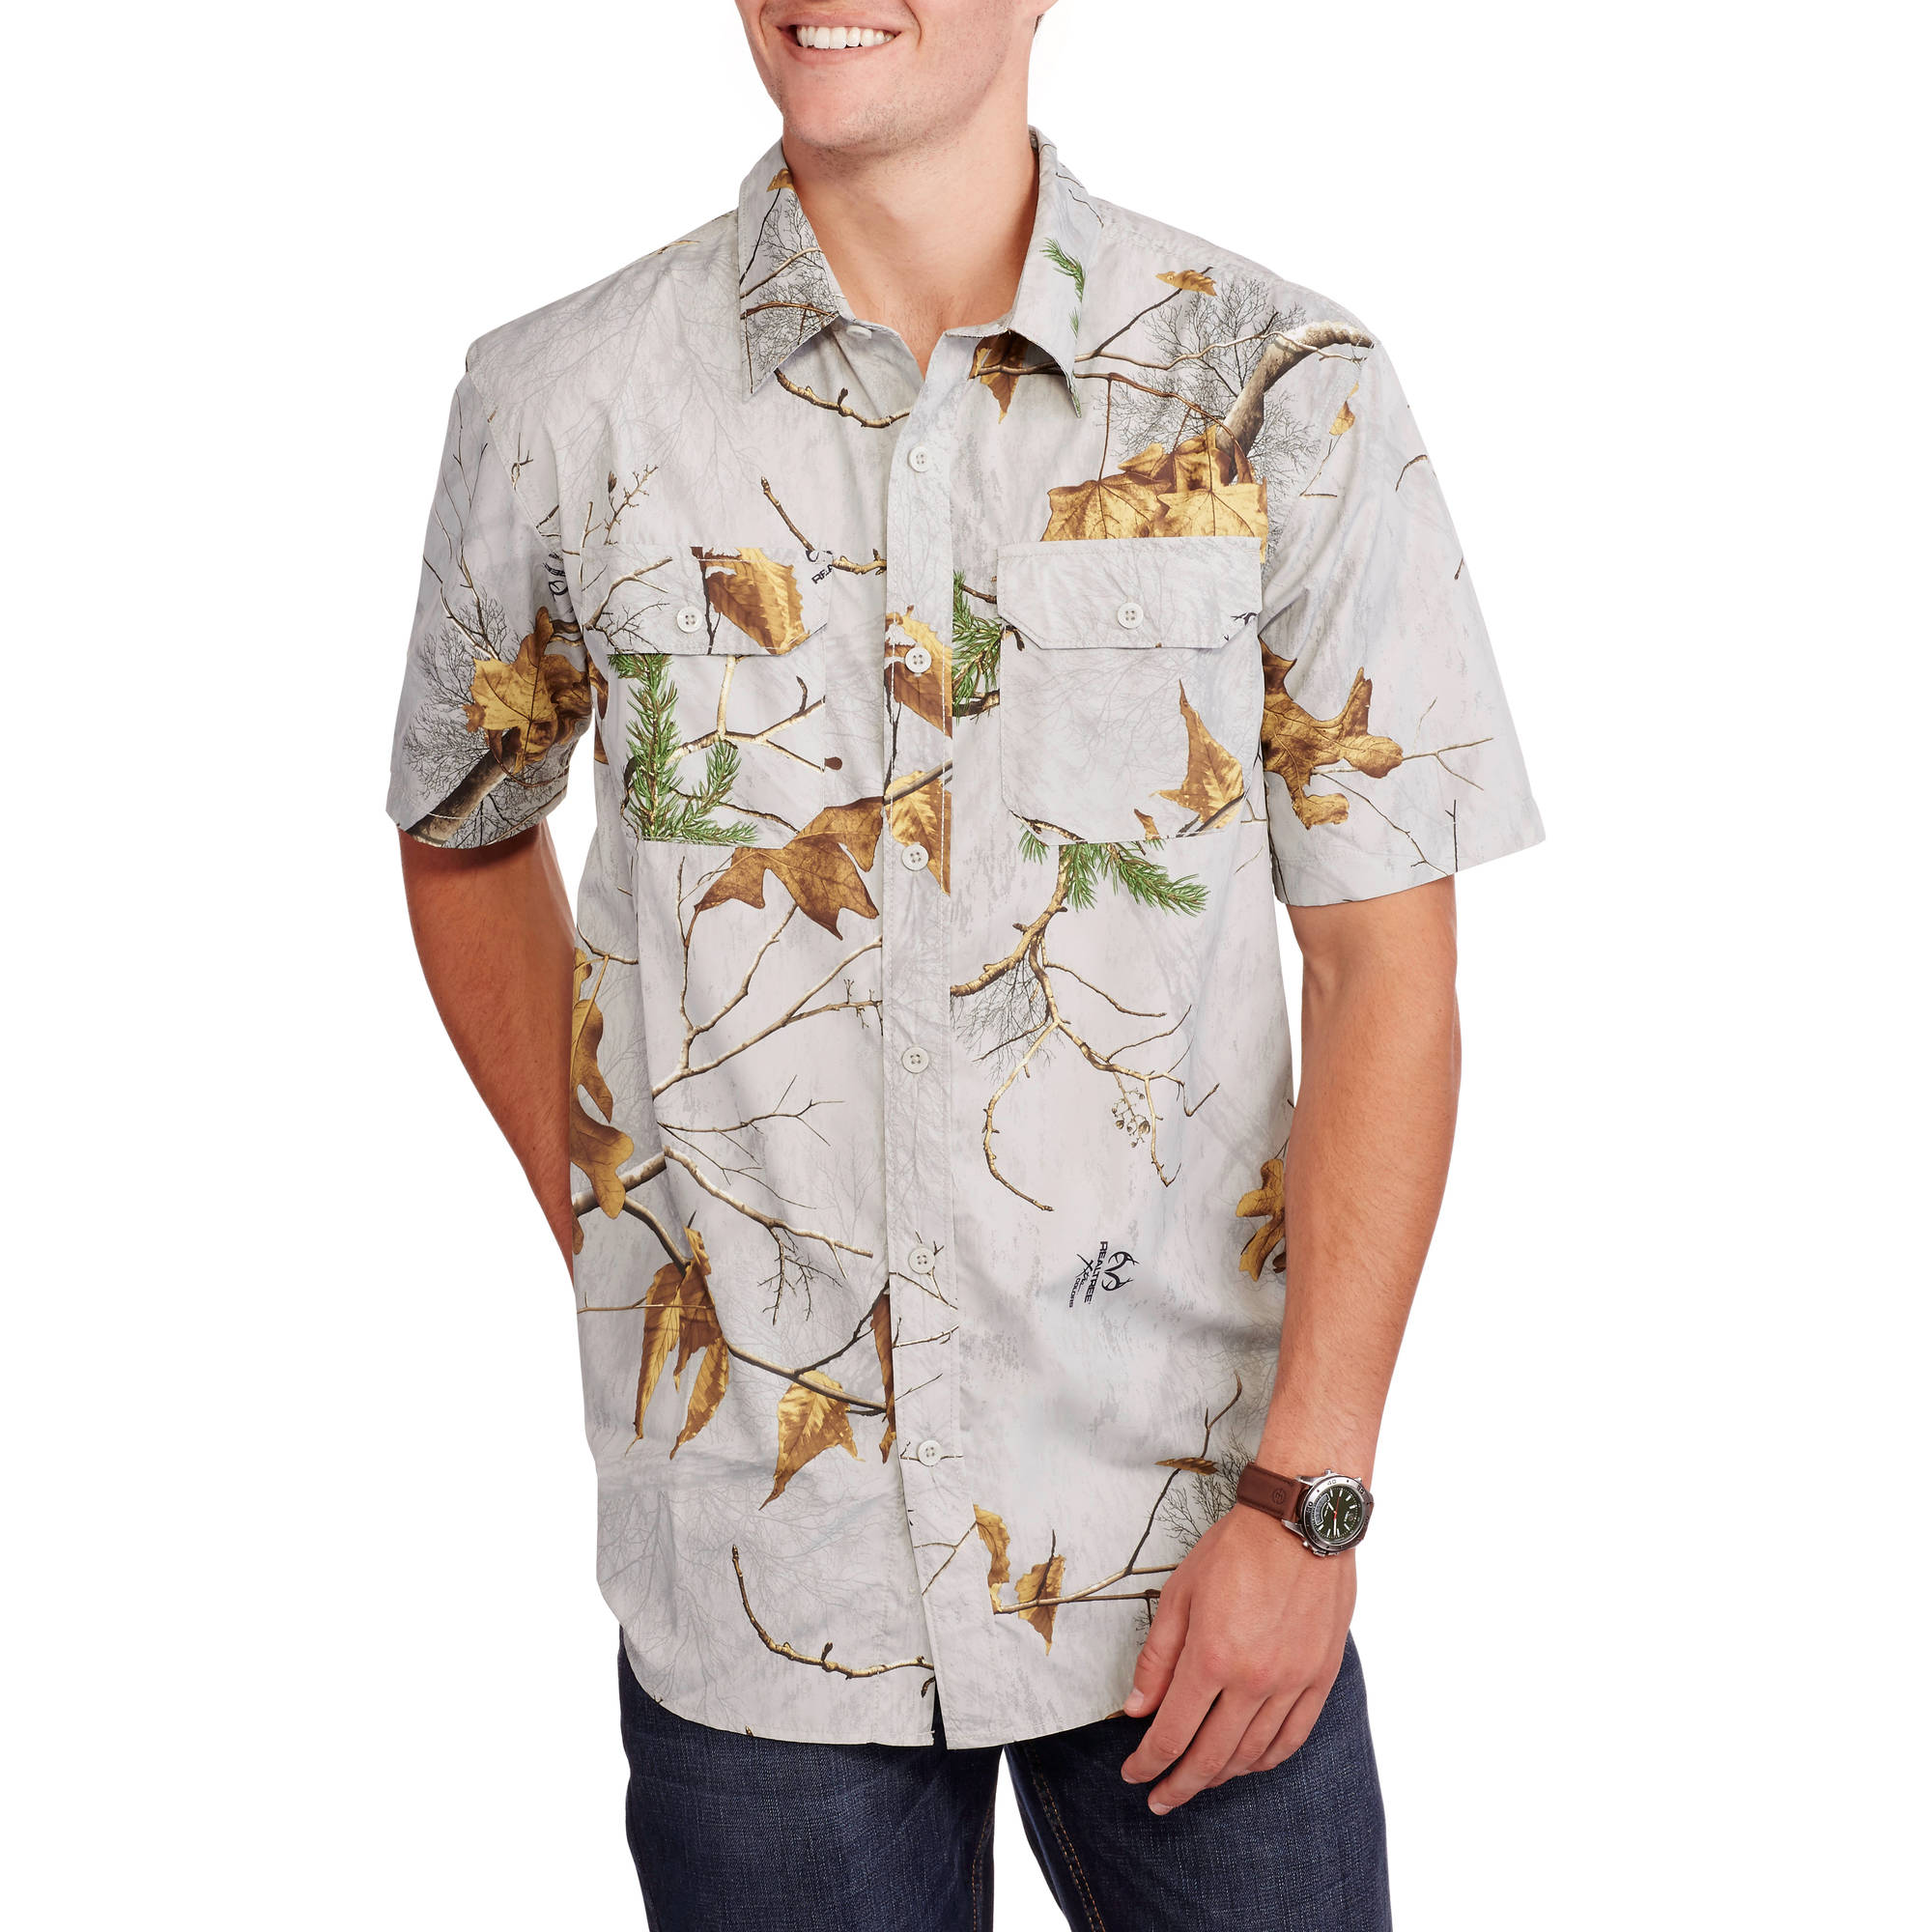 Big Men's Performance Short Sleeve Woven Shirt, 2XL